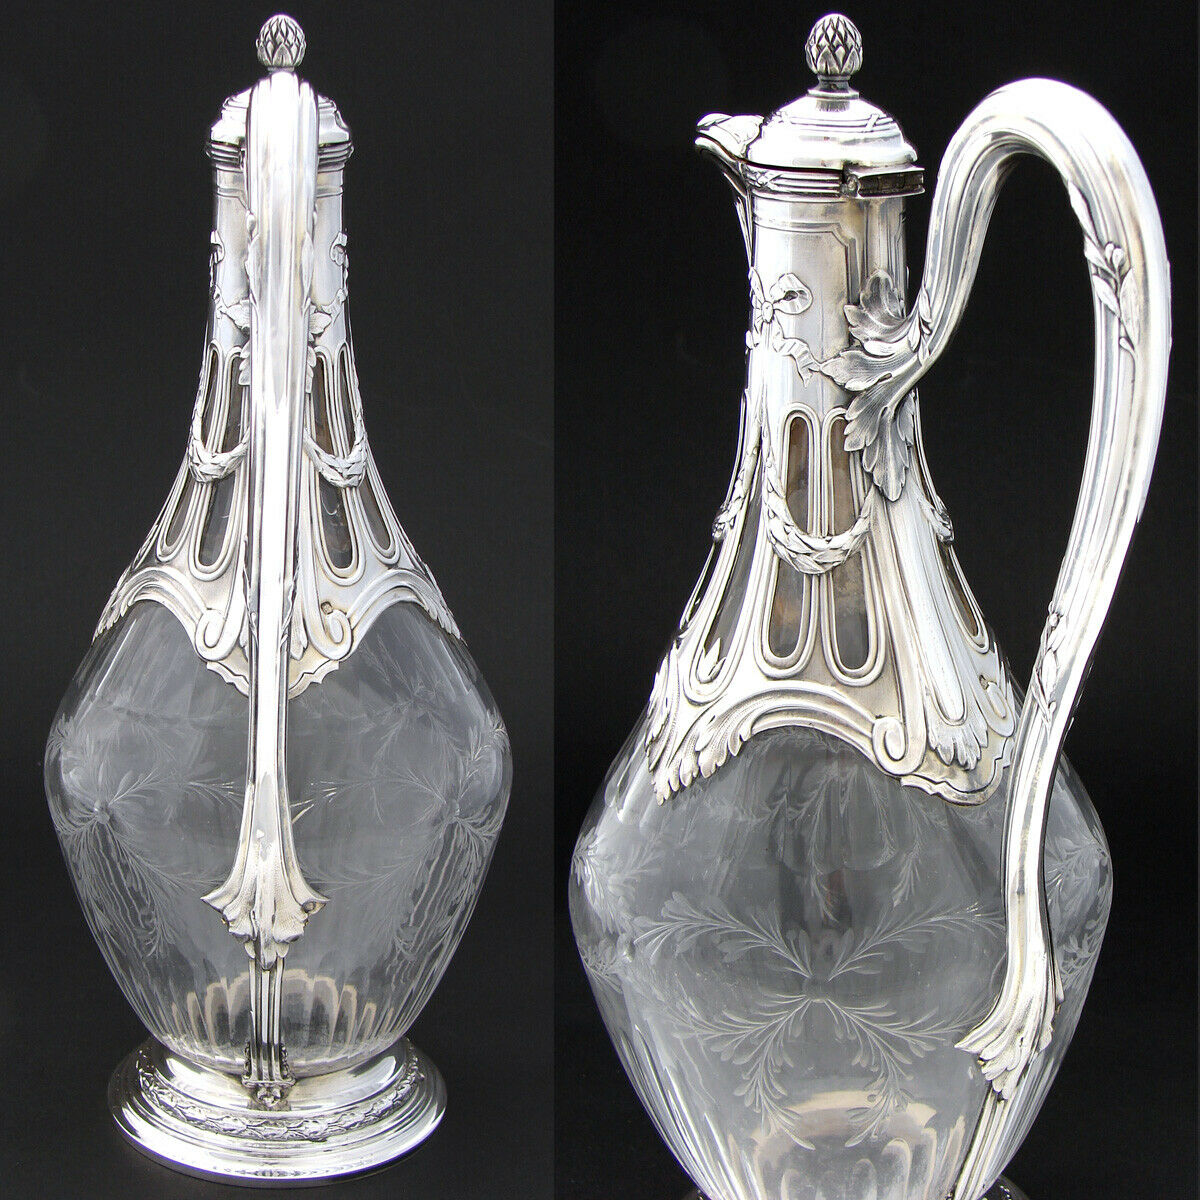 Antique French PUIFORCAT Sterling Silver & Intaglio Glass Claret Jug, Empire